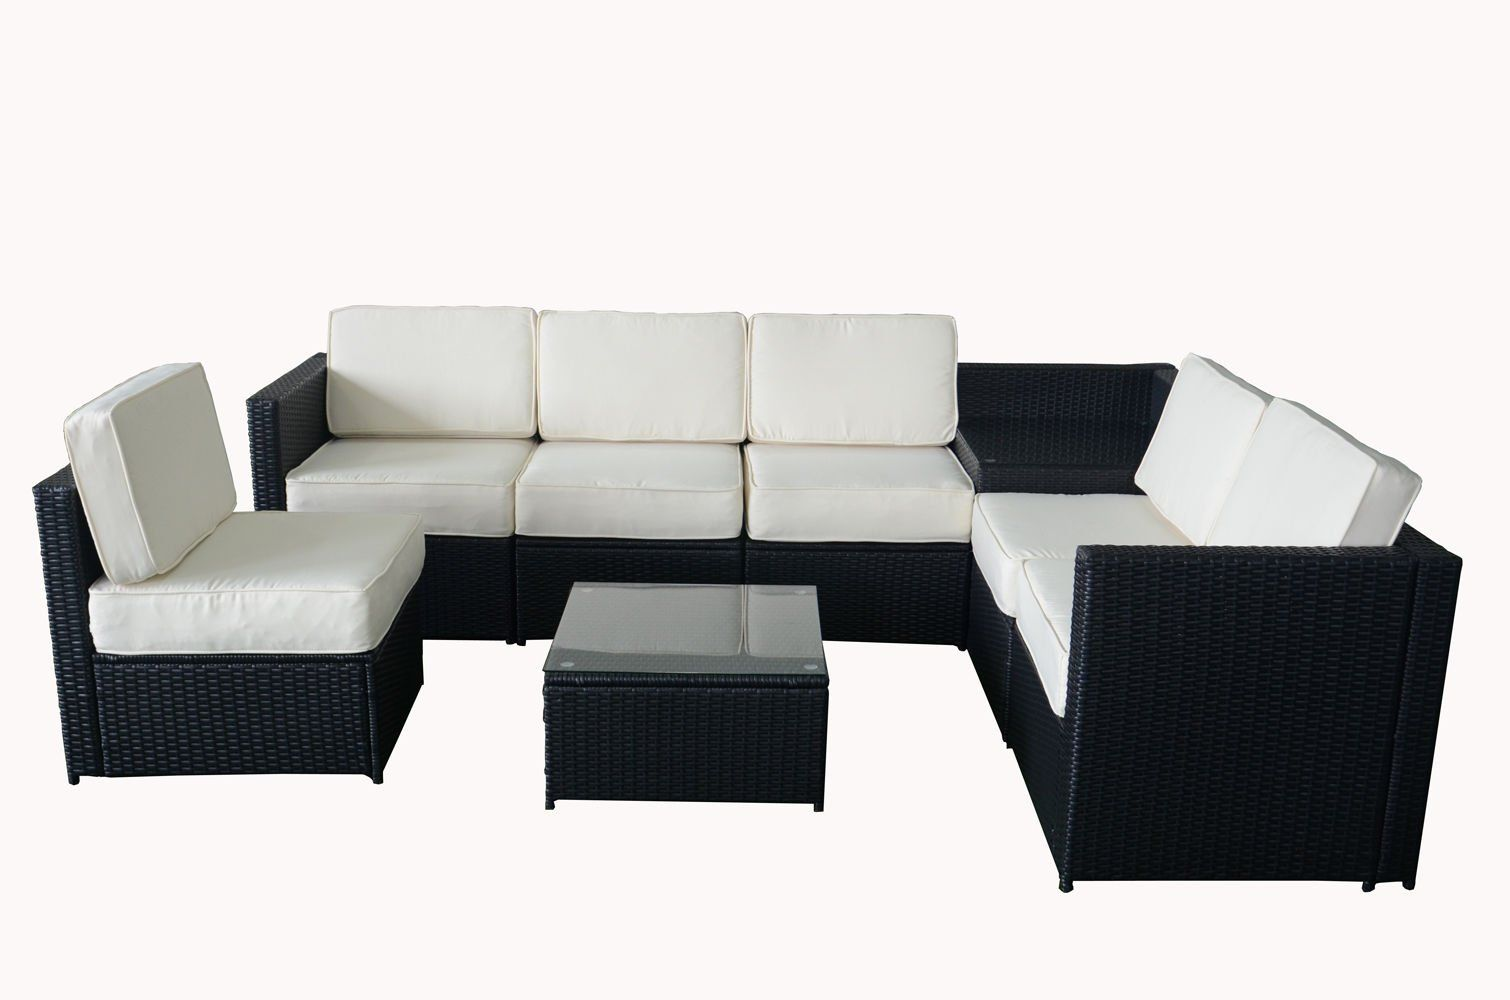 Mcombo piece wicker patio sectional indooroutdoor sofa